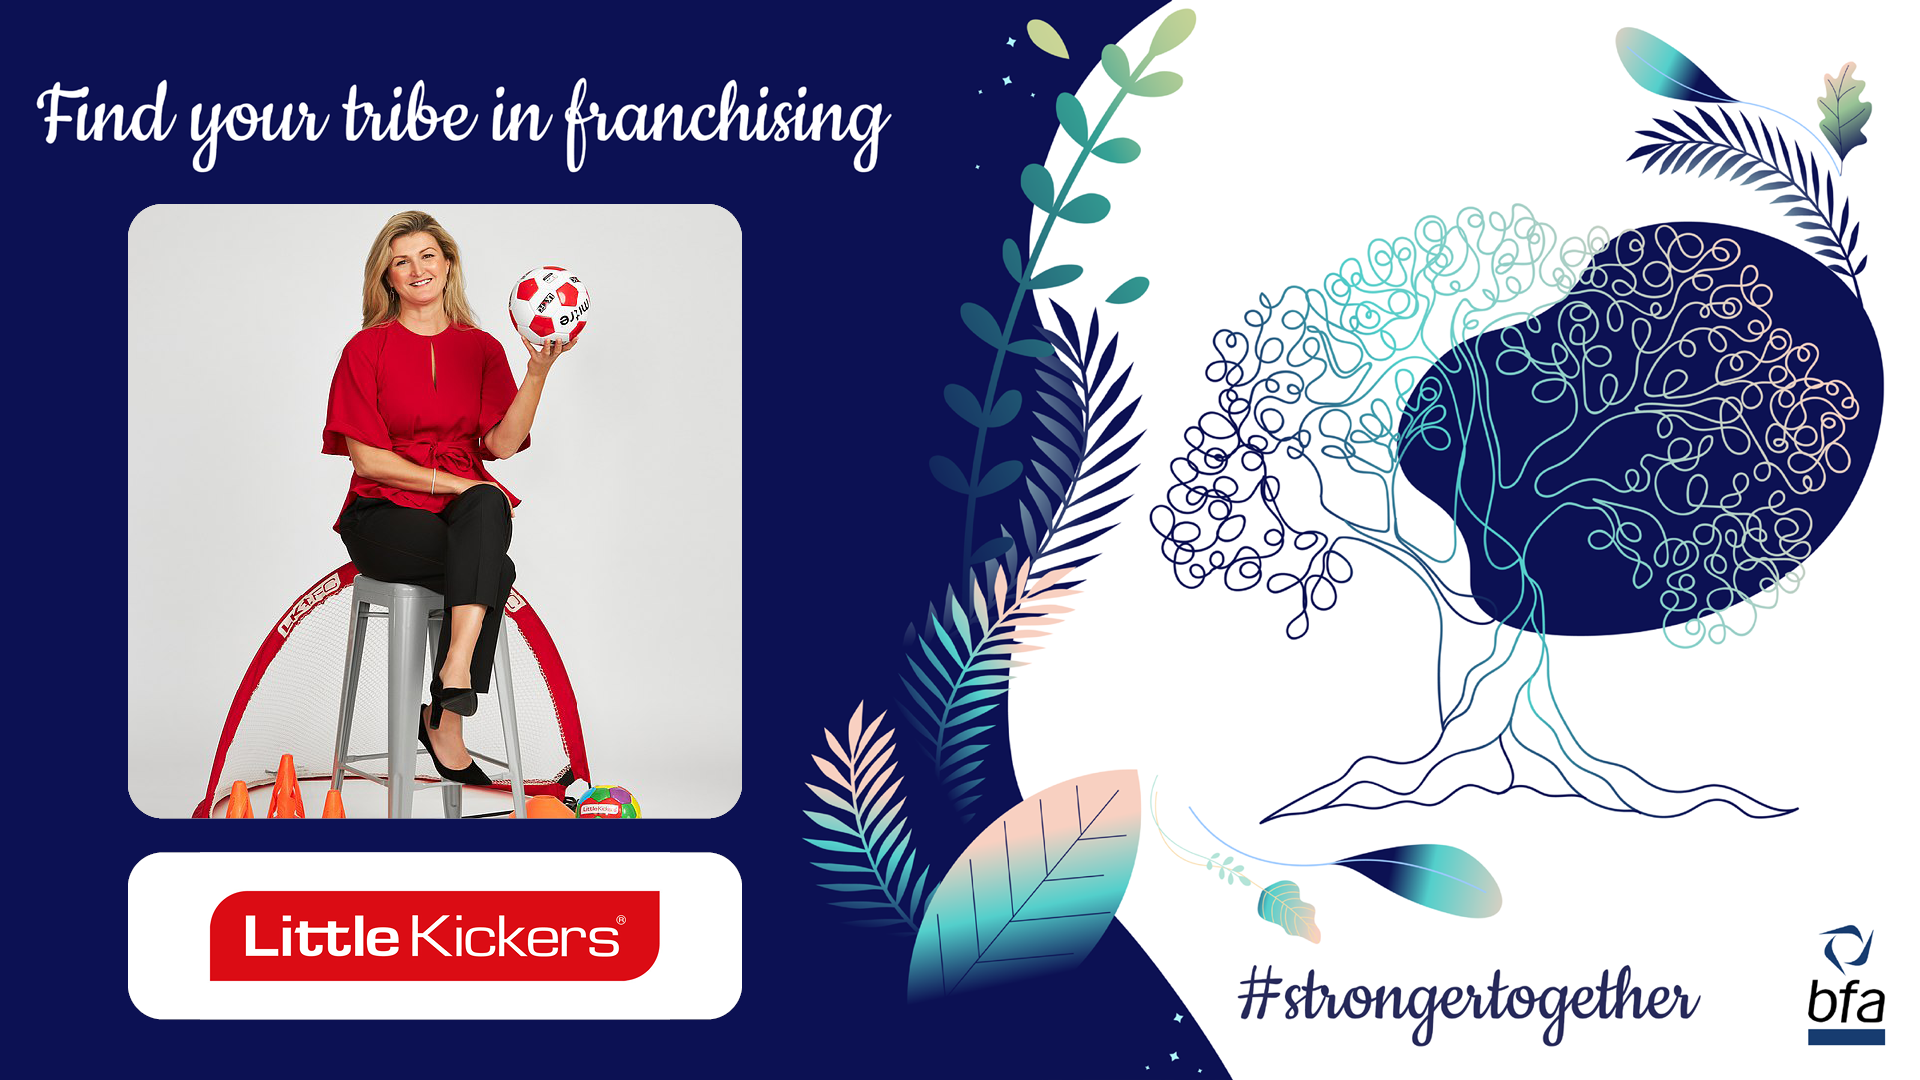 Christine Kelly – from £300 to an international brand helping people achieve balance in life